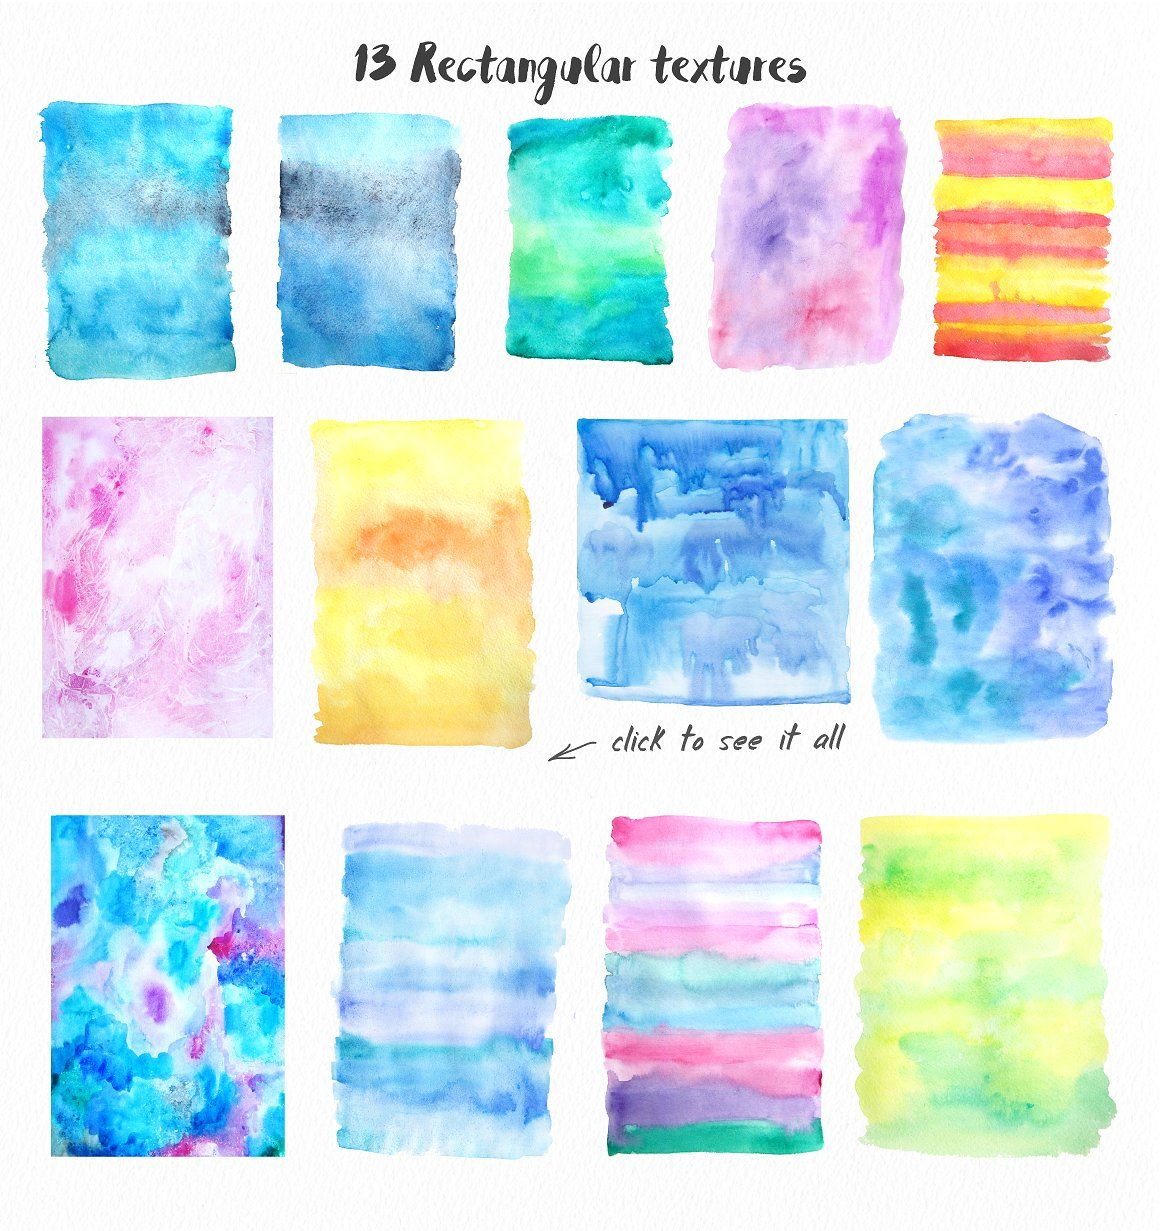 Big Watercolor Textures Pack Illustrator Adobe Created High